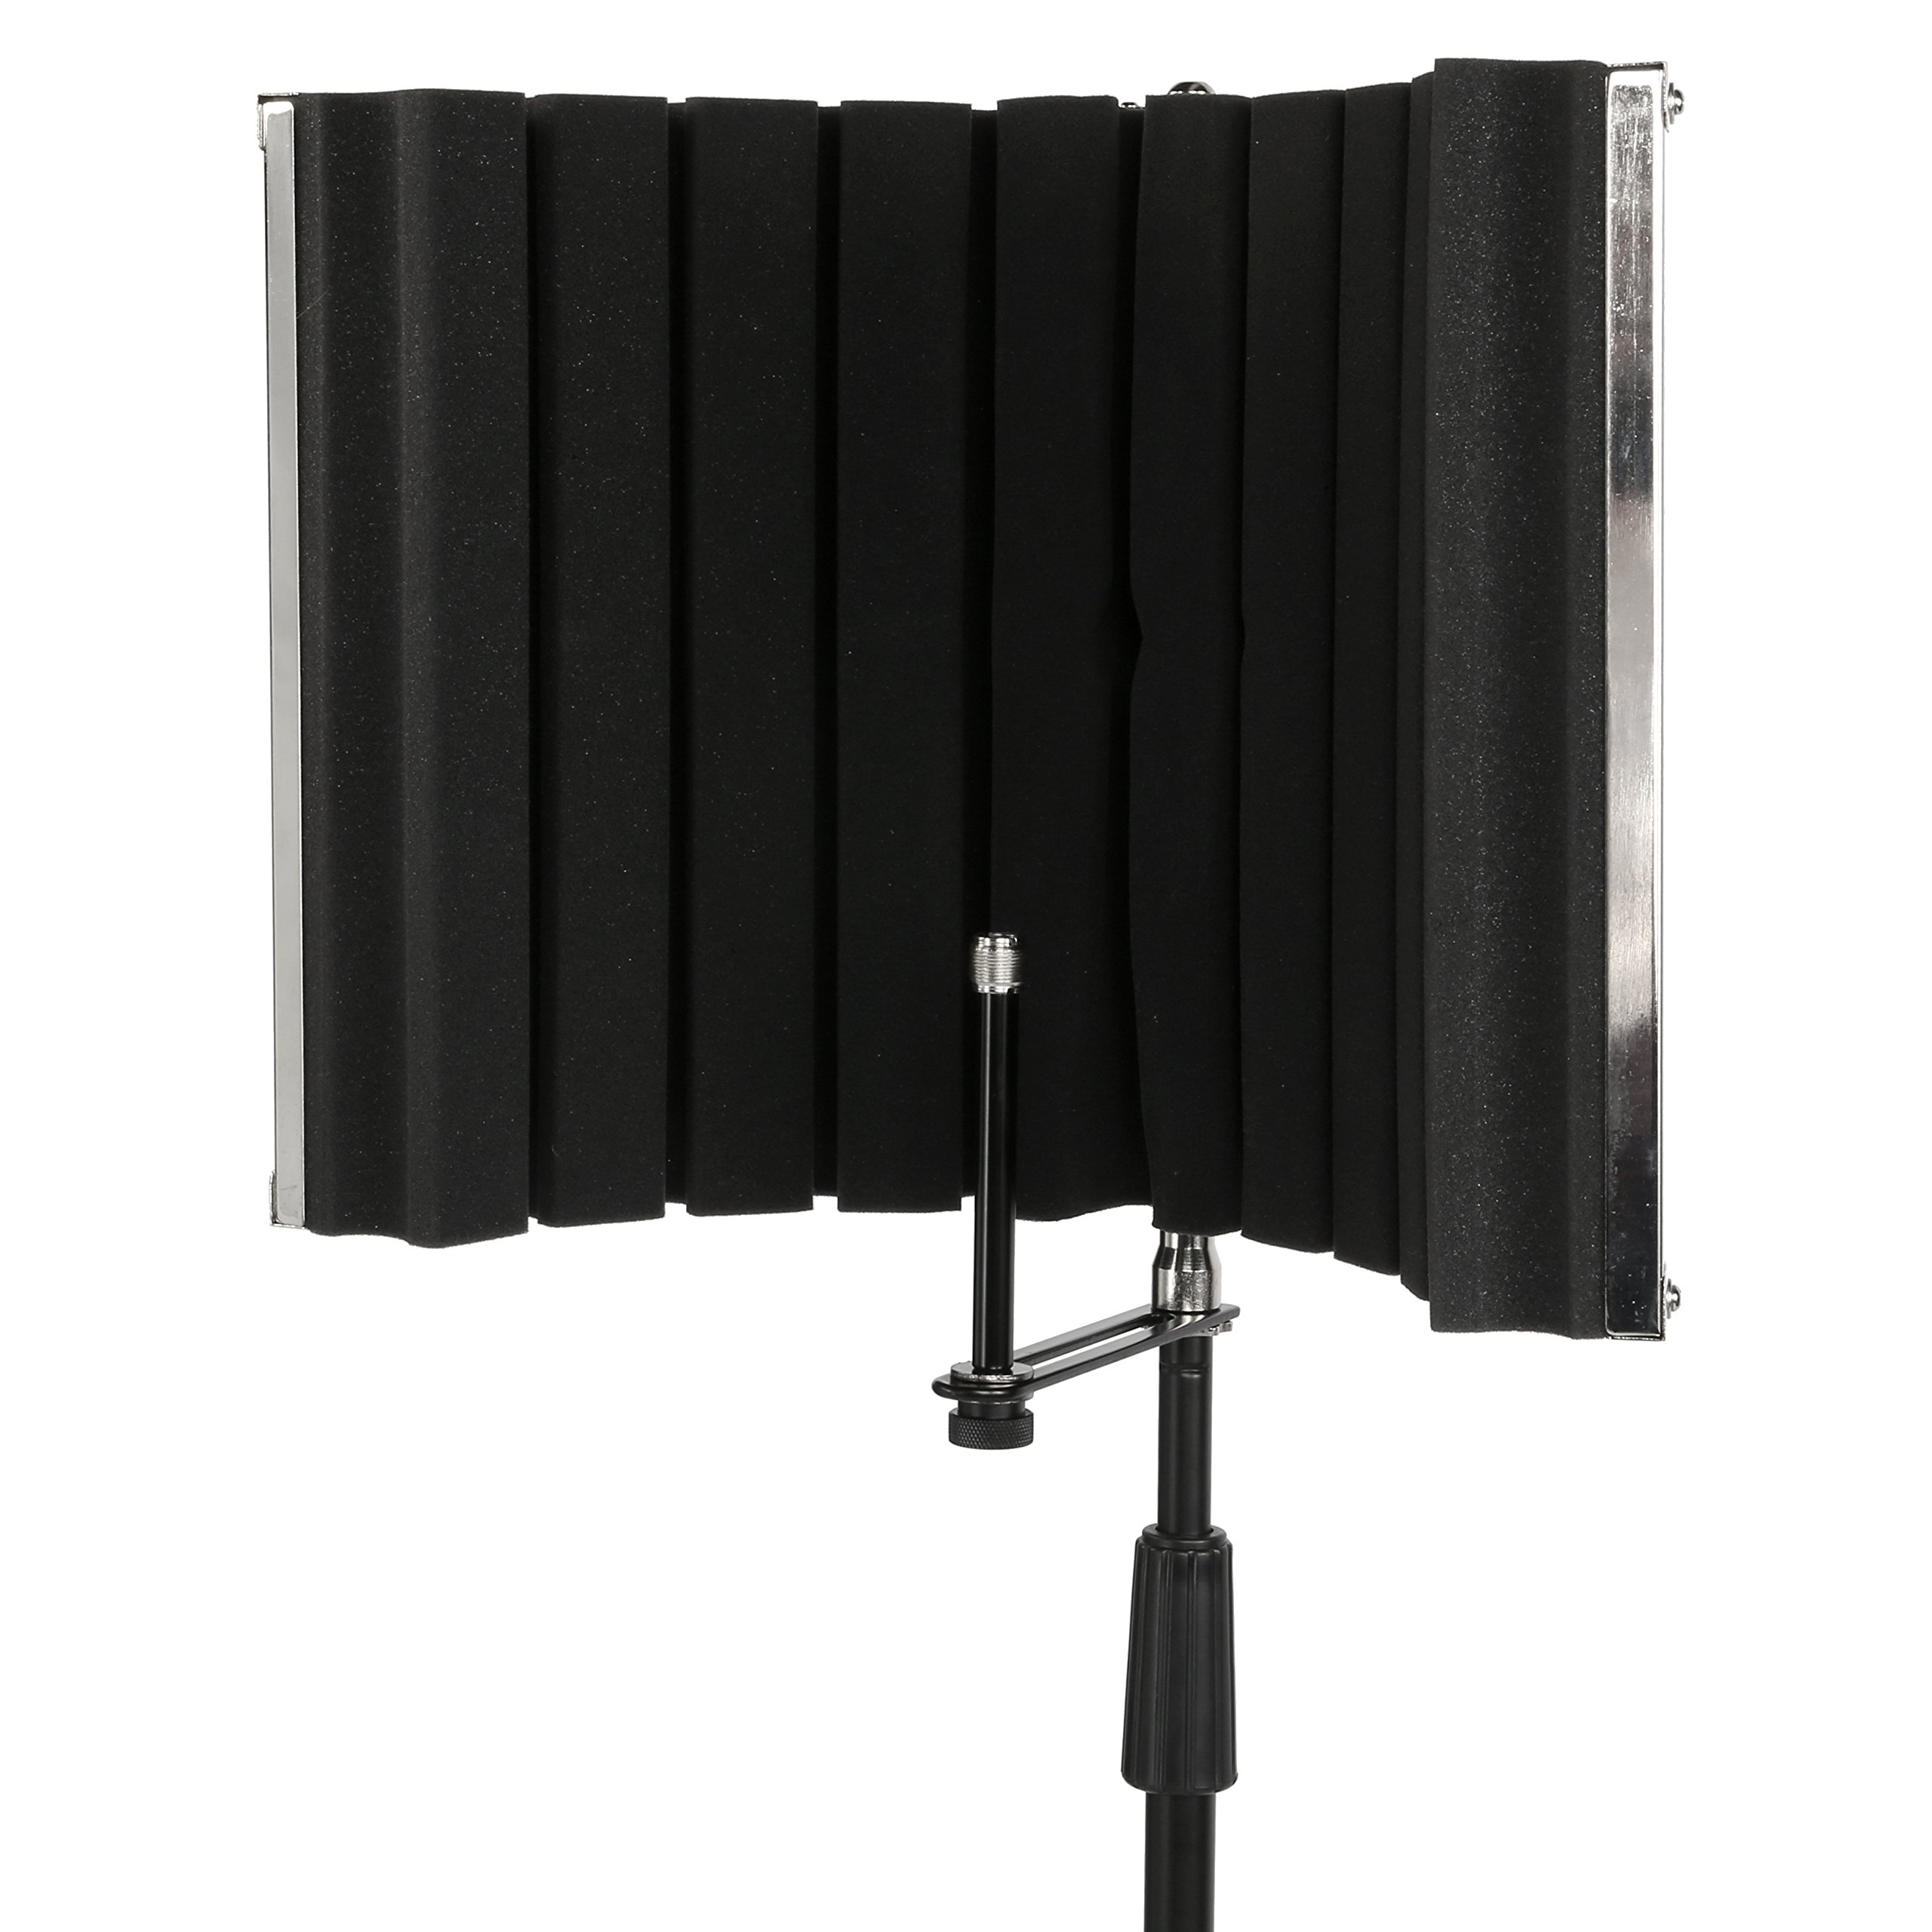 LyxPro VRI-30 - Portable & Foldable Sound Absorbing Vocal Recording Panel - Stand Mount